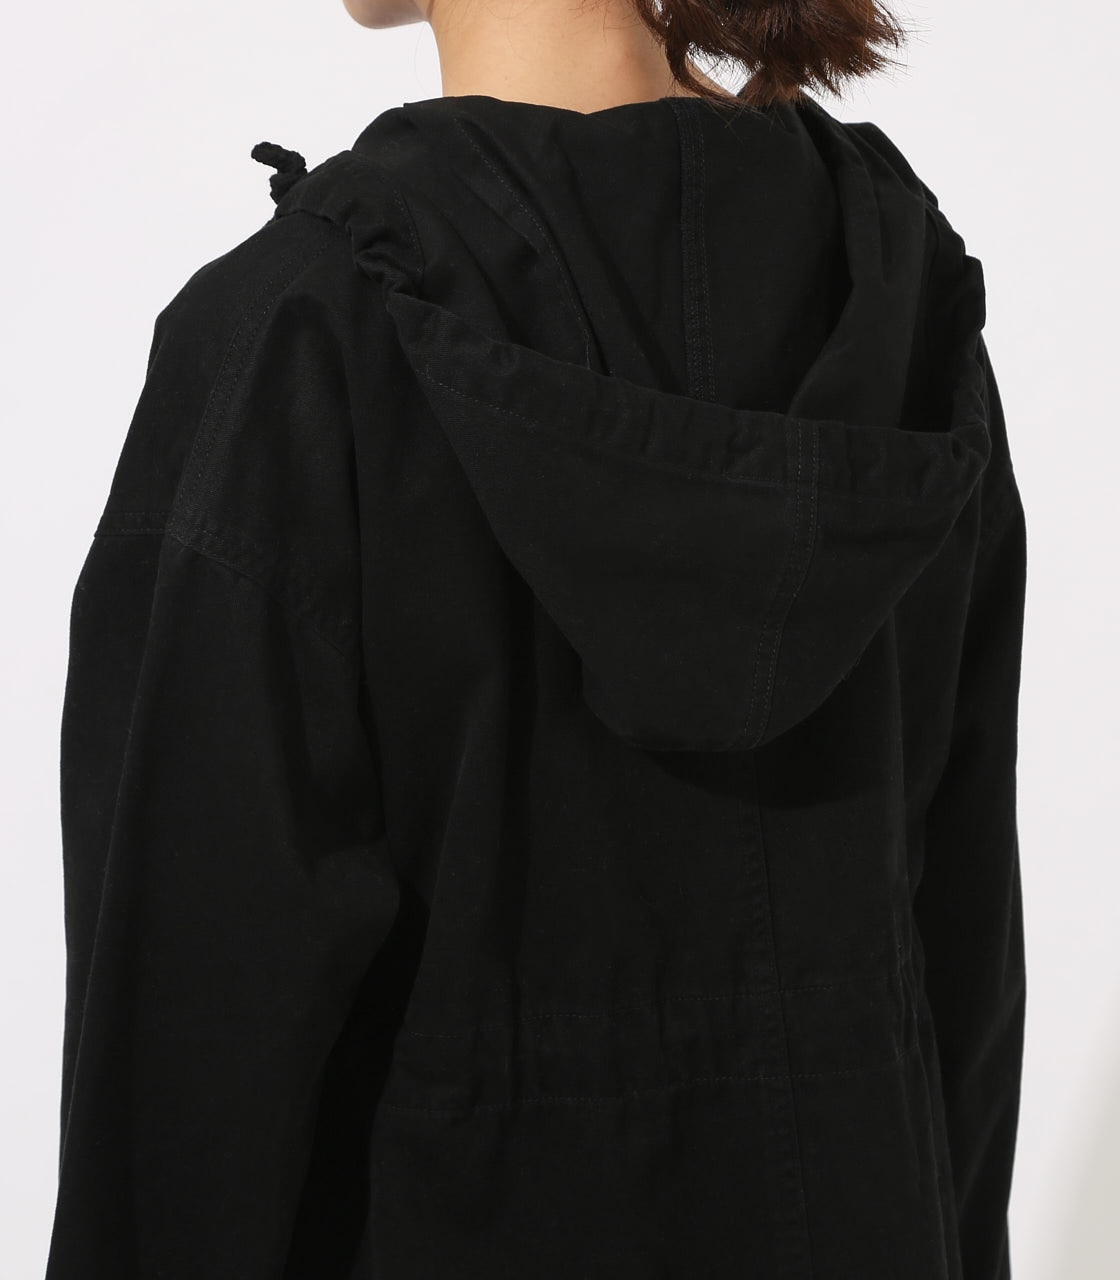 【AZUL BY MOUSSY】LOOSE MODS COAT 【MOOK49掲載 90044】 詳細画像 BLK 9